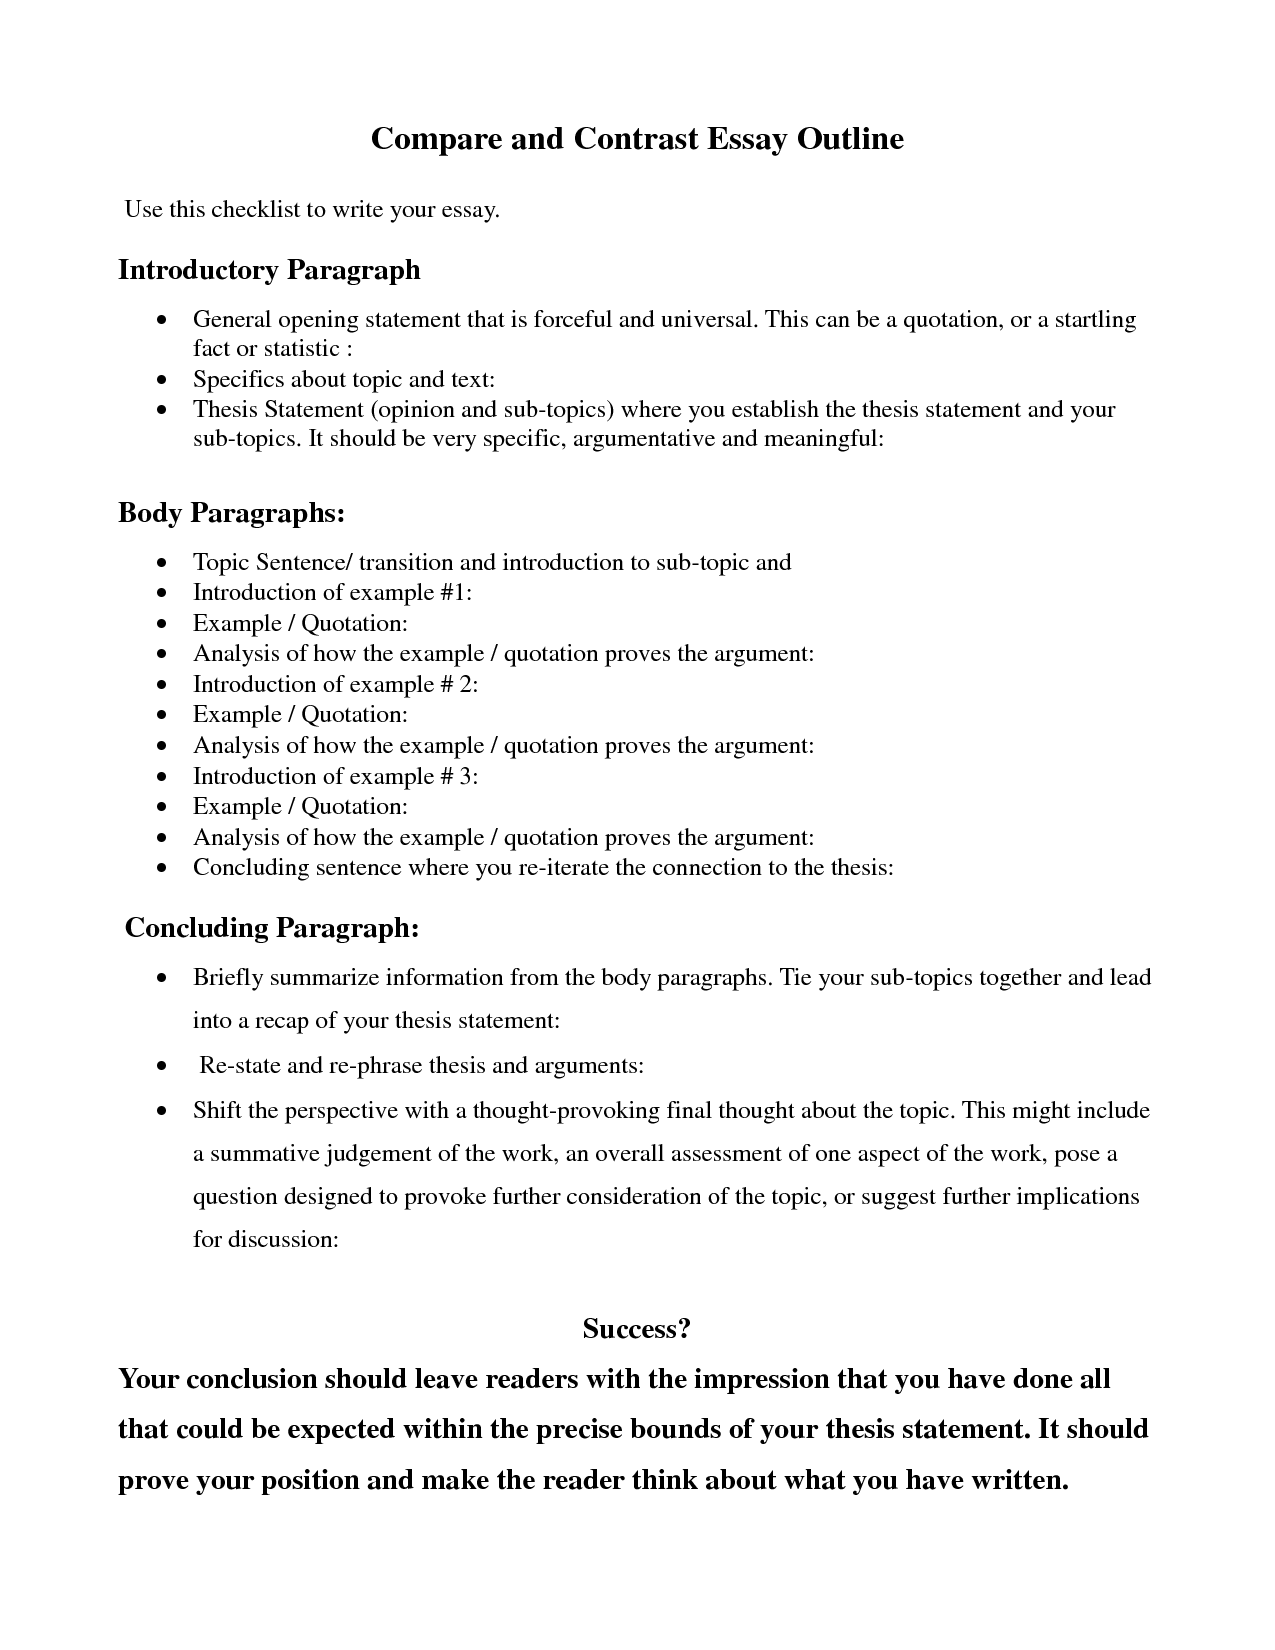 Comparecontrast Essay Outline  Google Search  Education  Thesis  Comparecontrast Essay Outline  Google Search Exle Of A Thesis Statement  For An Argumentative